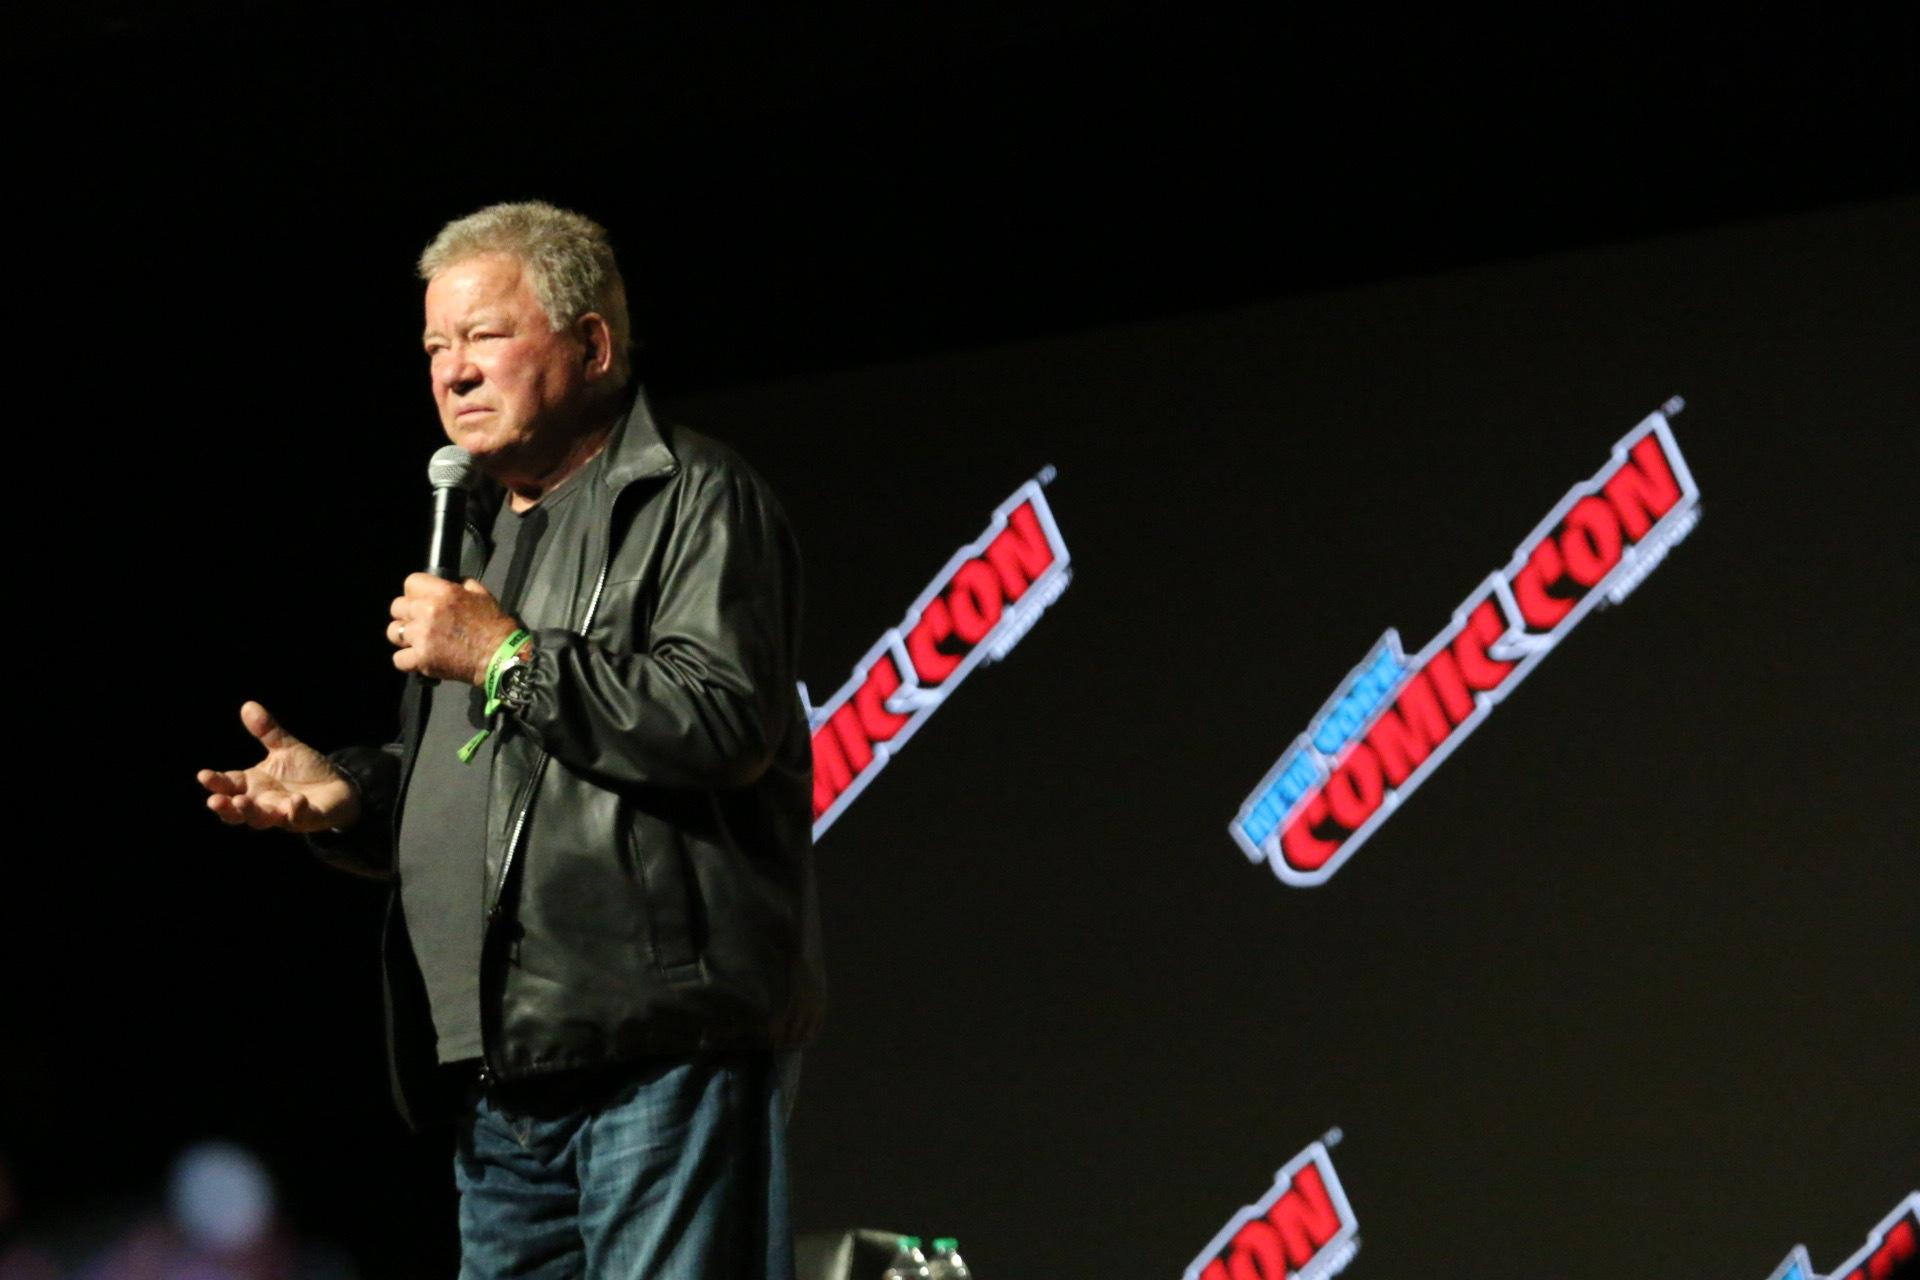 William Shatner takes the stage at New York Comic Con on Oct. 7, 2021.